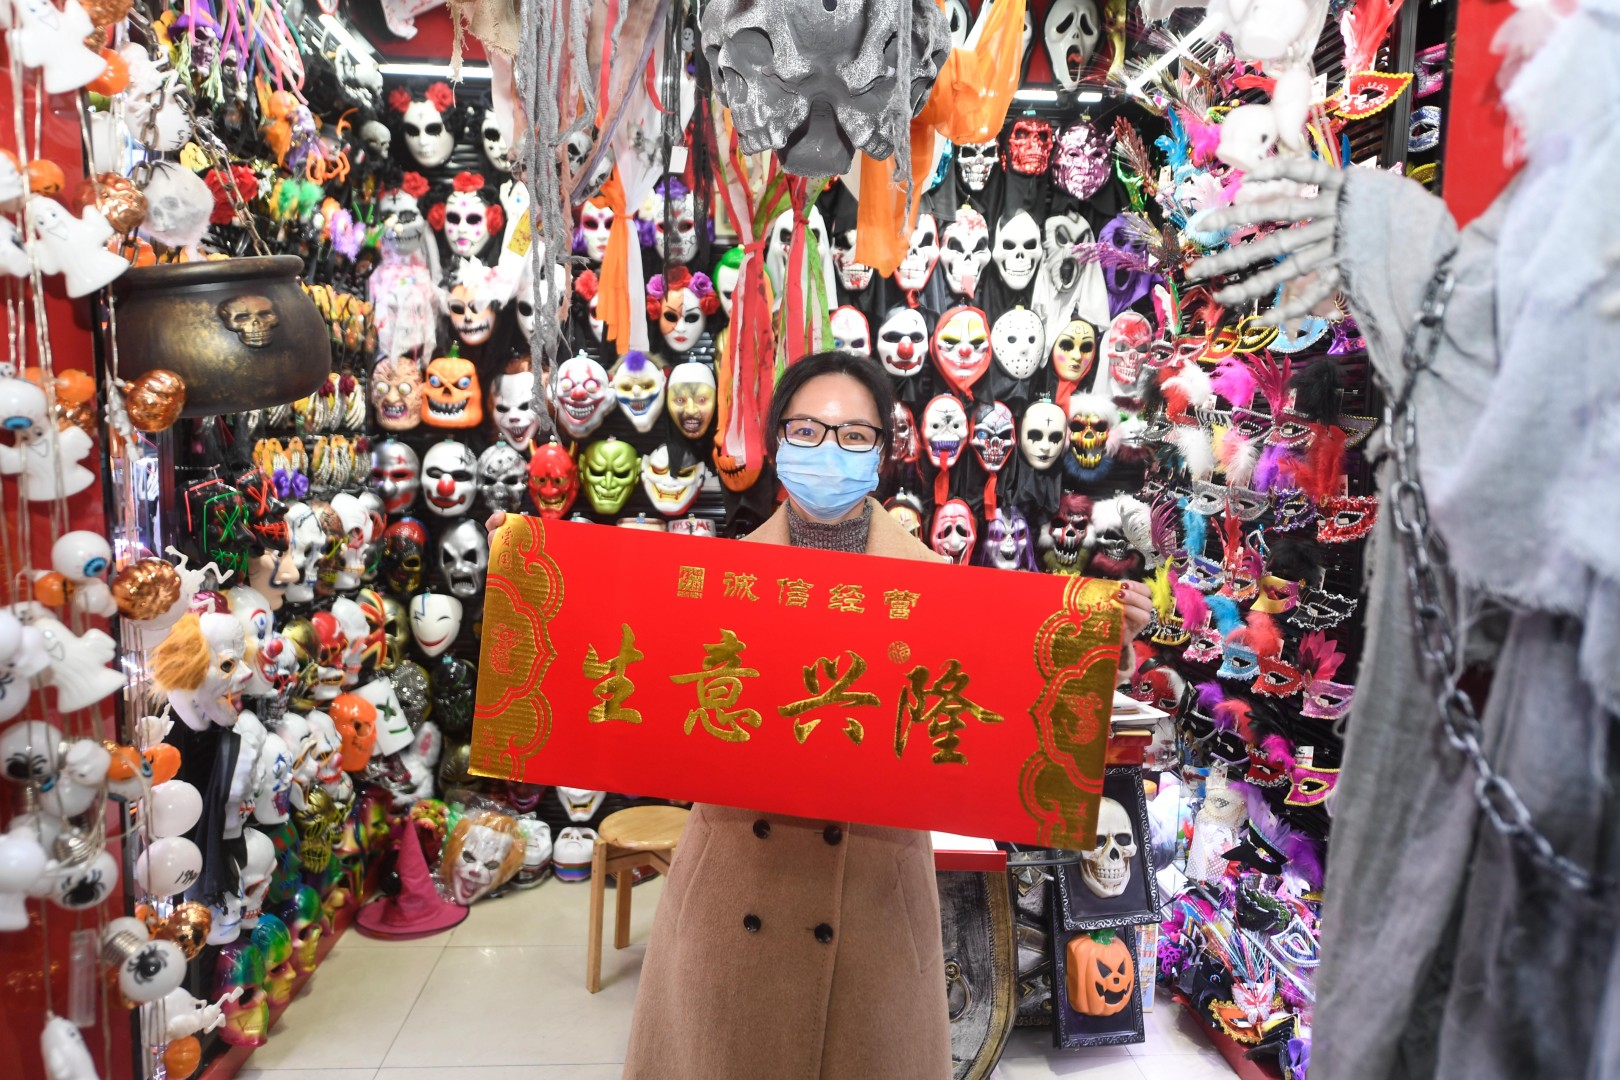 Coronavirus: world's largest market reopens its doors to 'foreign friends', promising 'Yiwu will be normal soon' | South China Morning Post